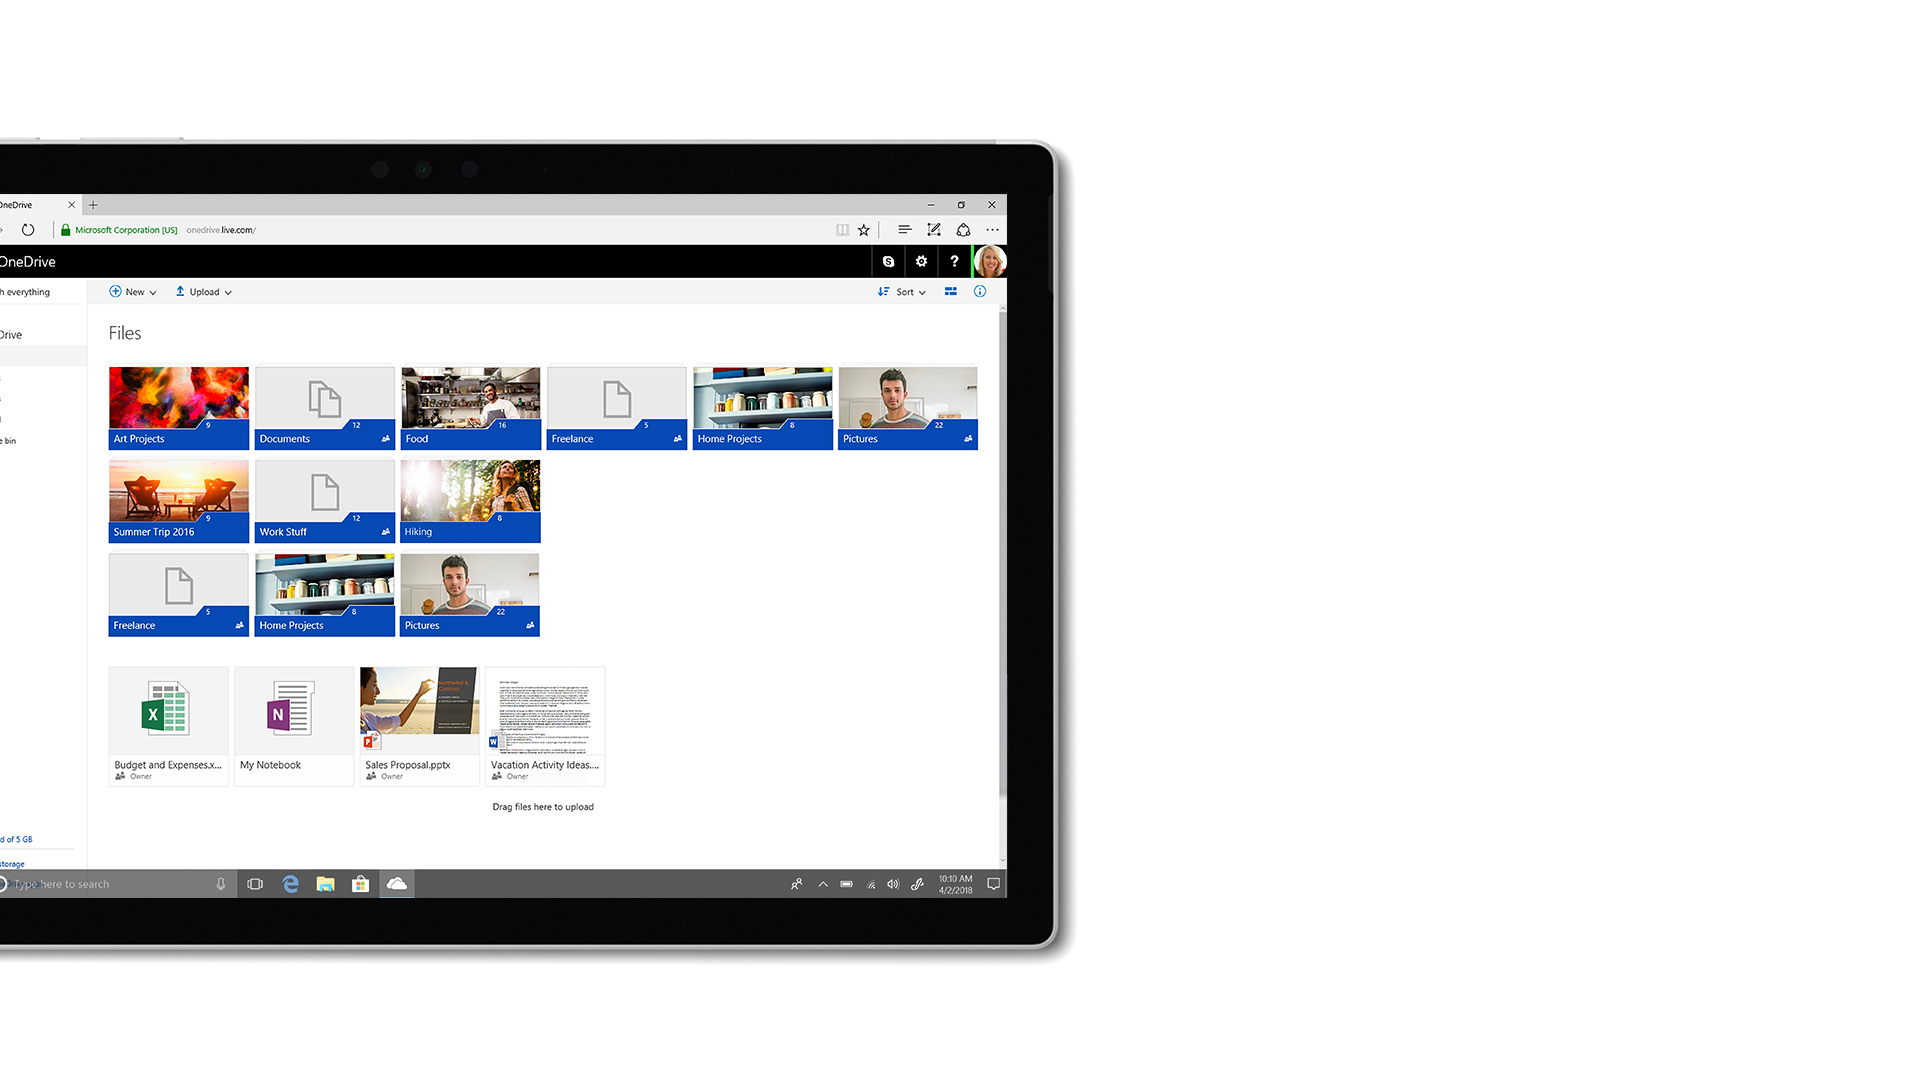 Imagem da interface de utilizador do Microsoft OneDrive